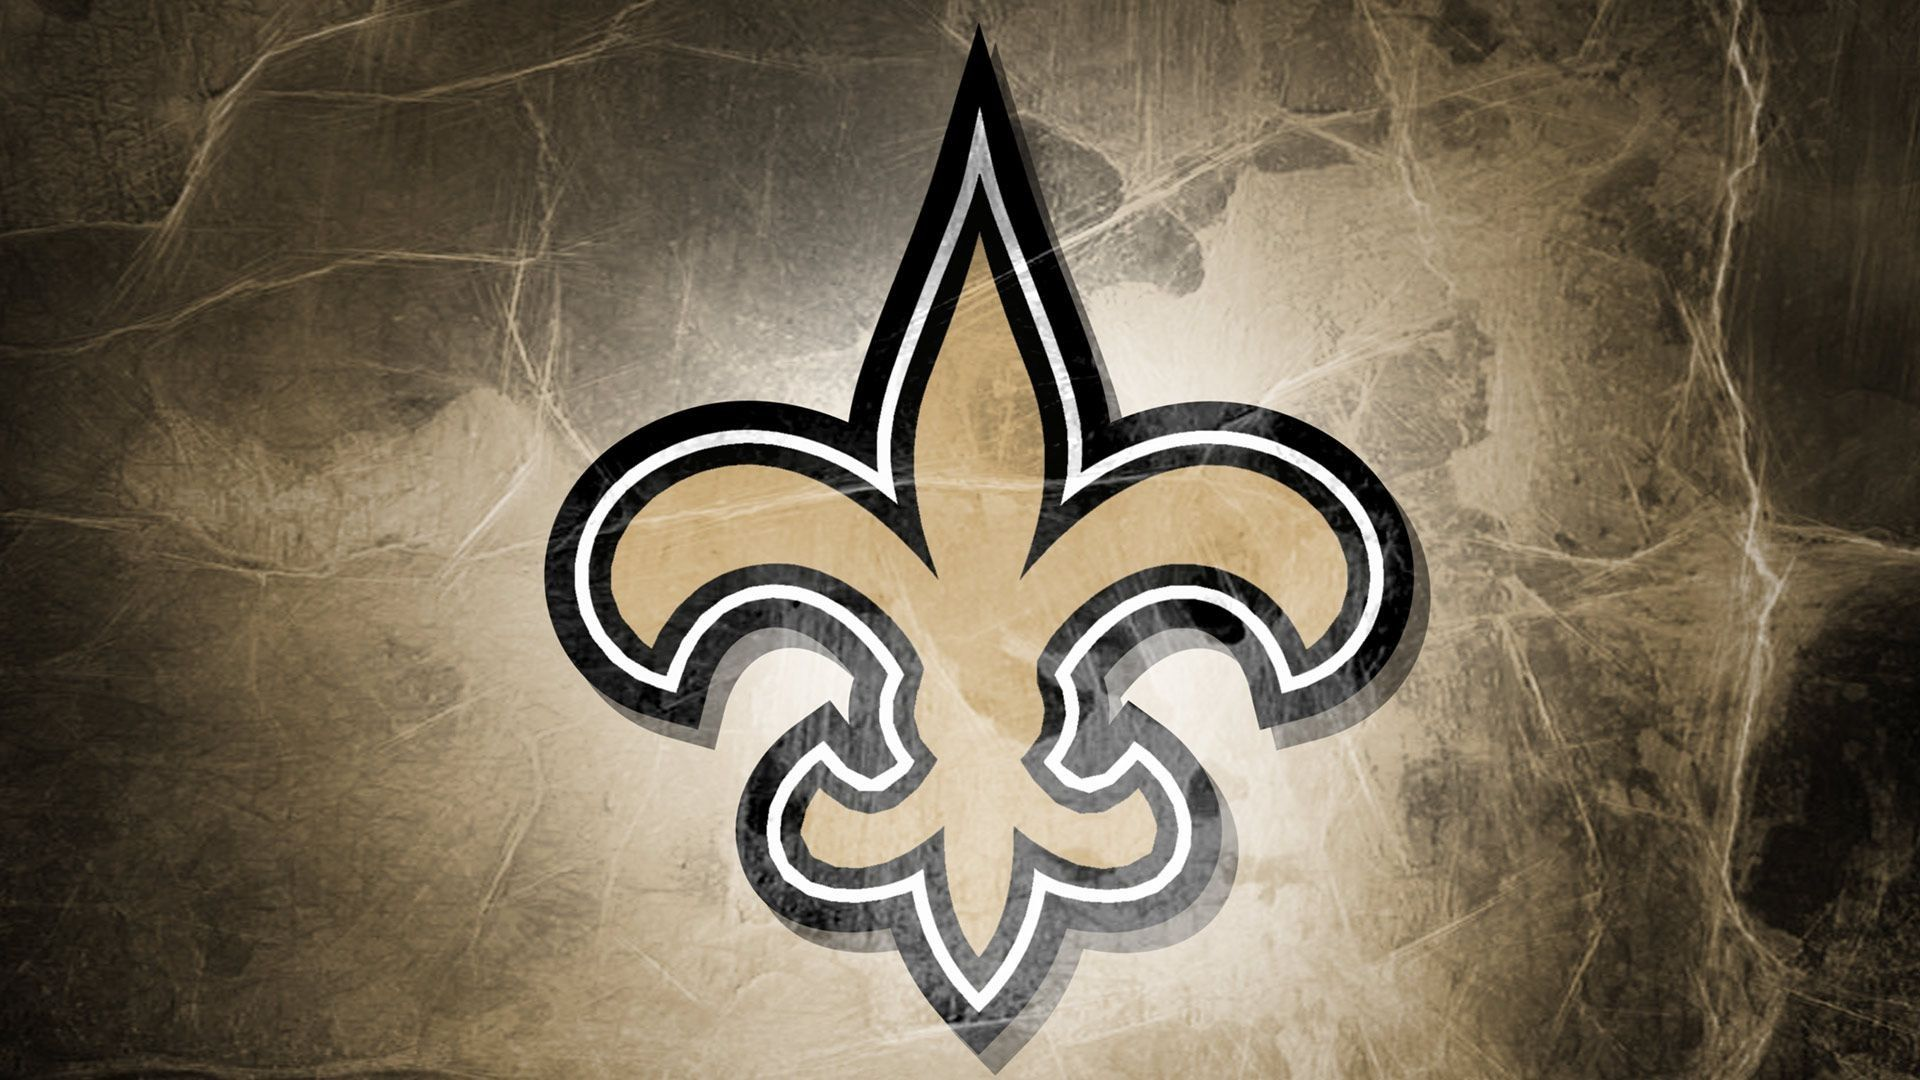 New Orleans Saints Wallpaper HD New orleans saints